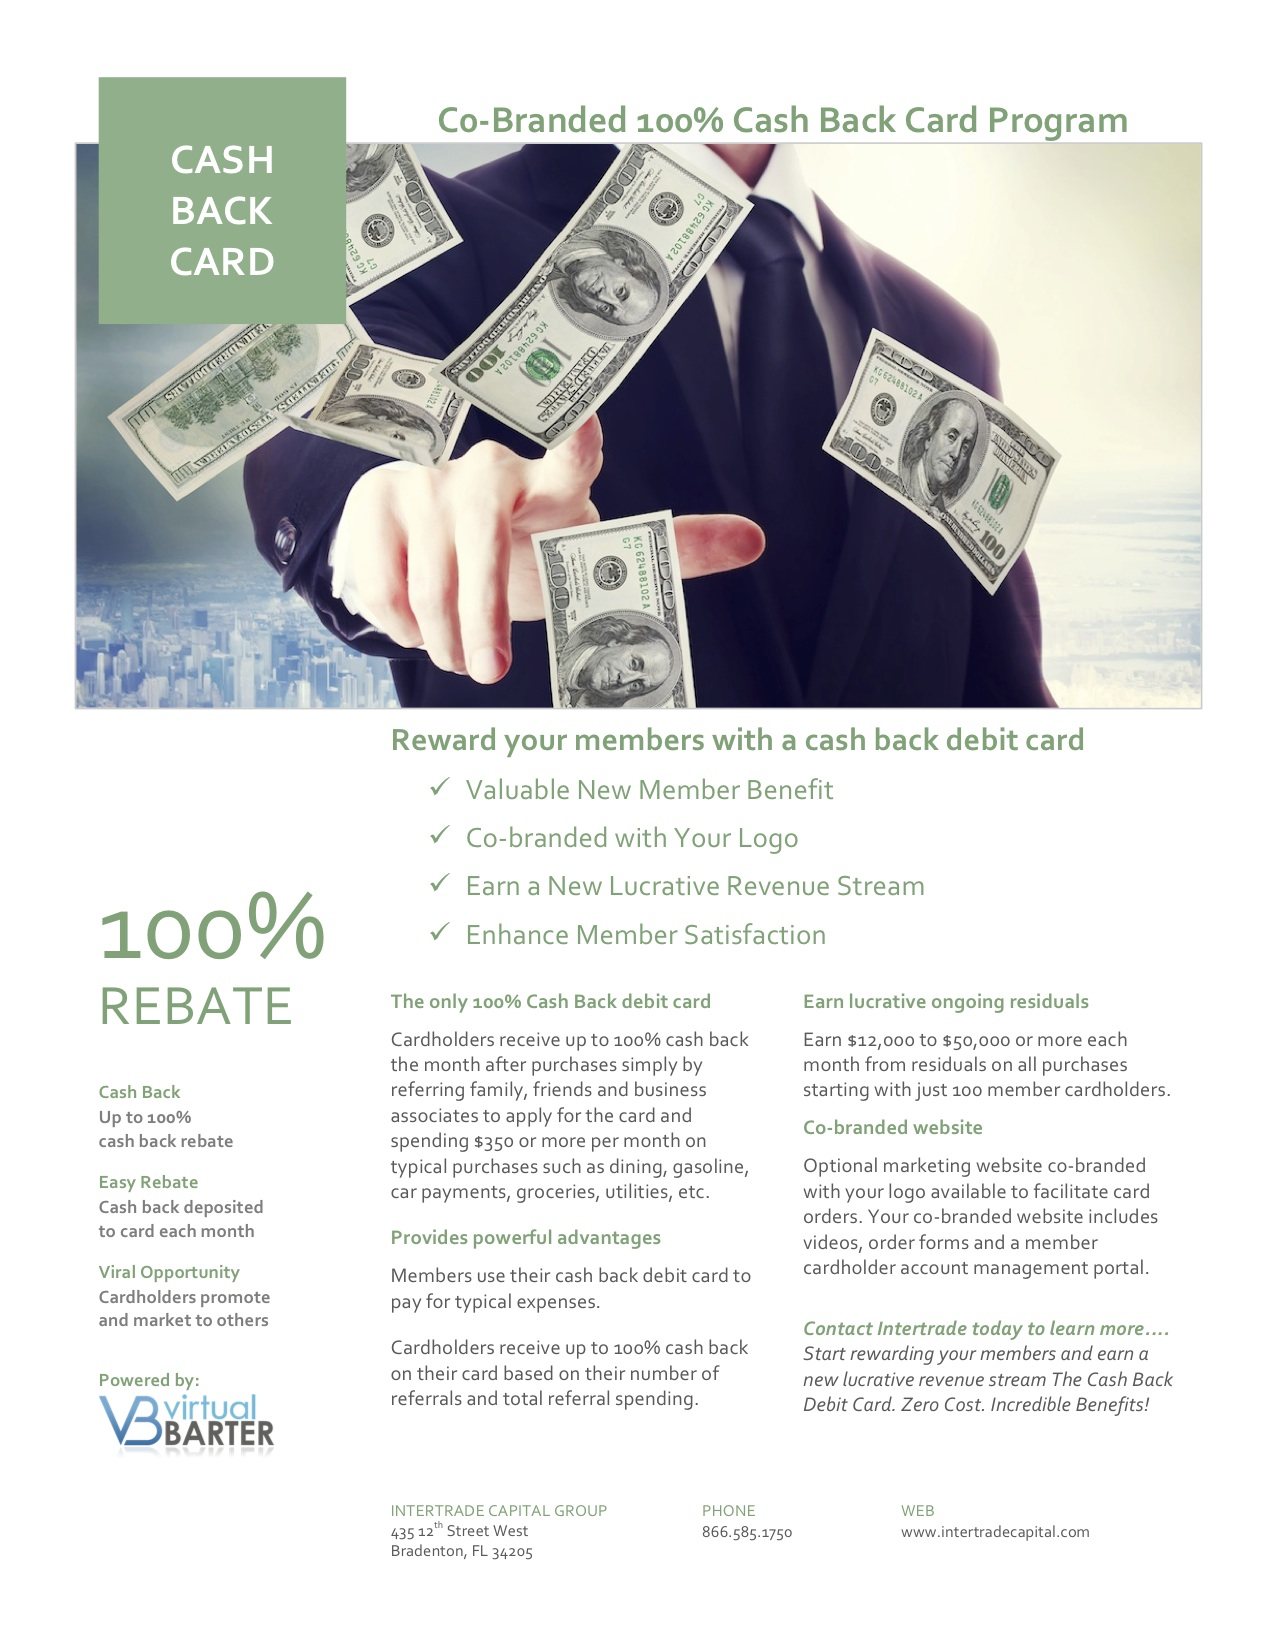 Cash Back Debit Card Flyer - Green